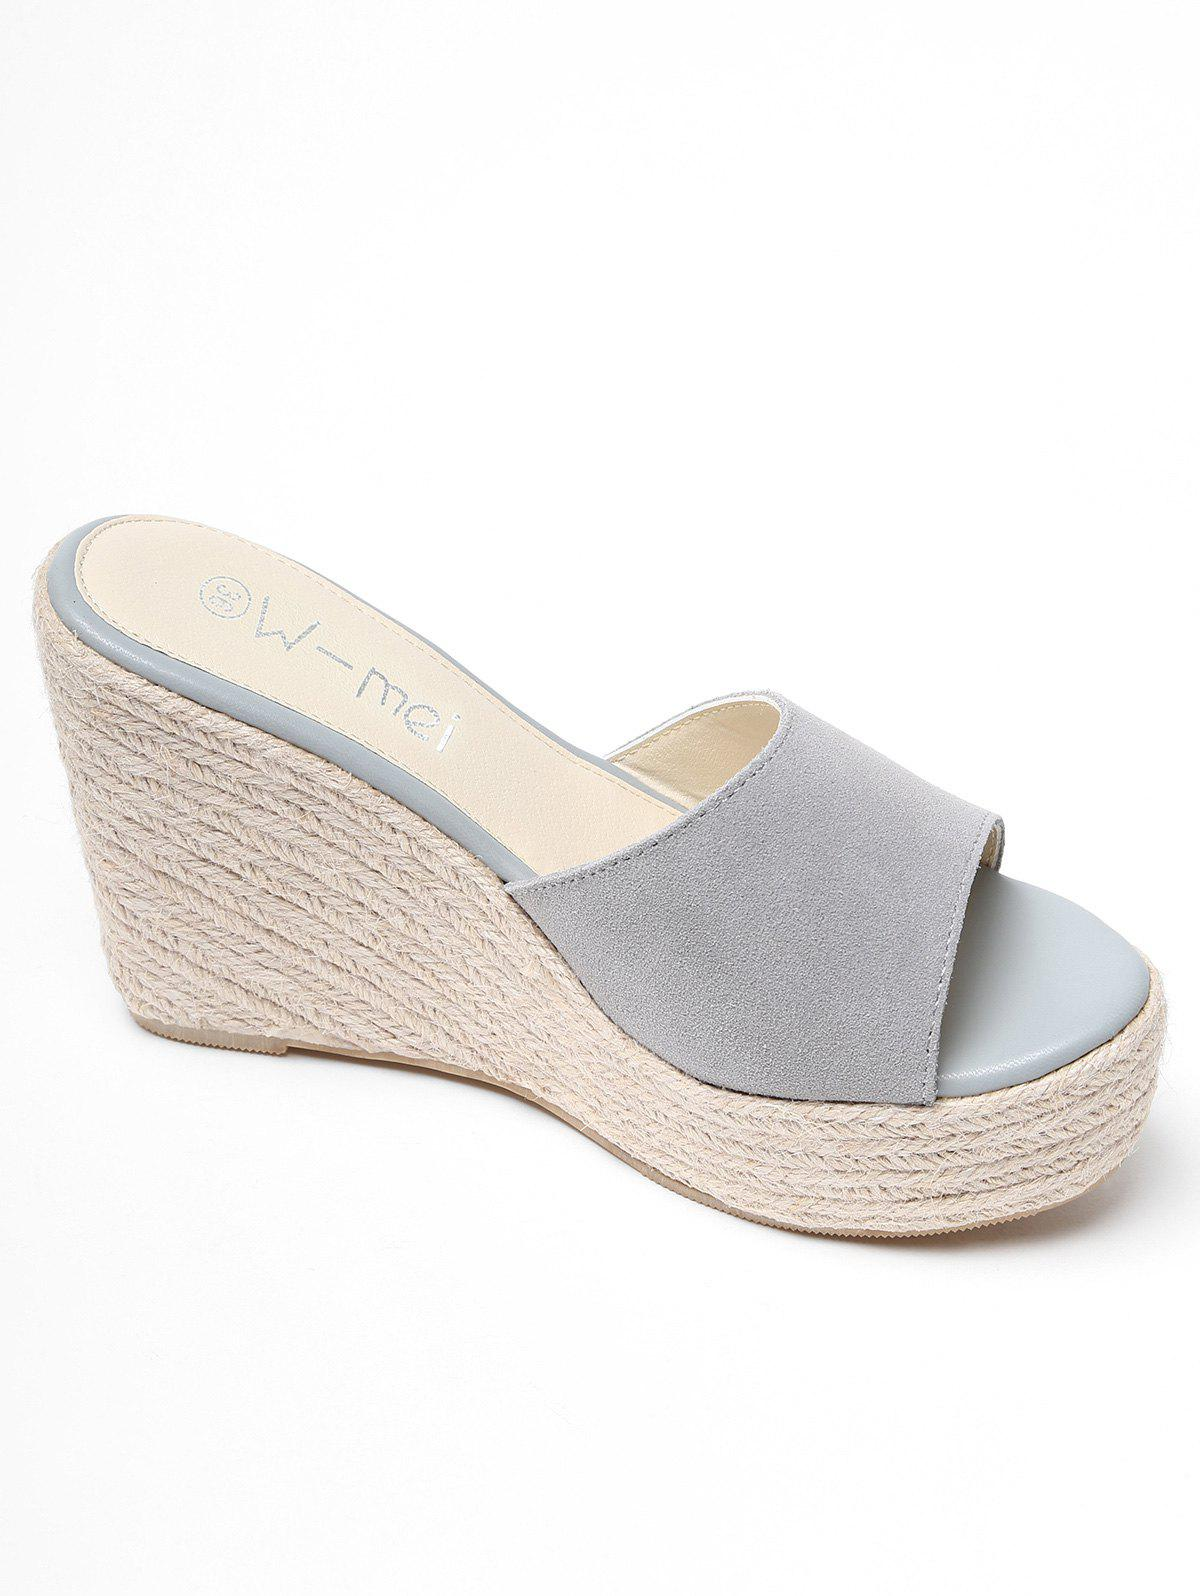 2018 Espadrille Wedge Heel Slides Shoes Gray In Slippers Online High With Pompoms 38